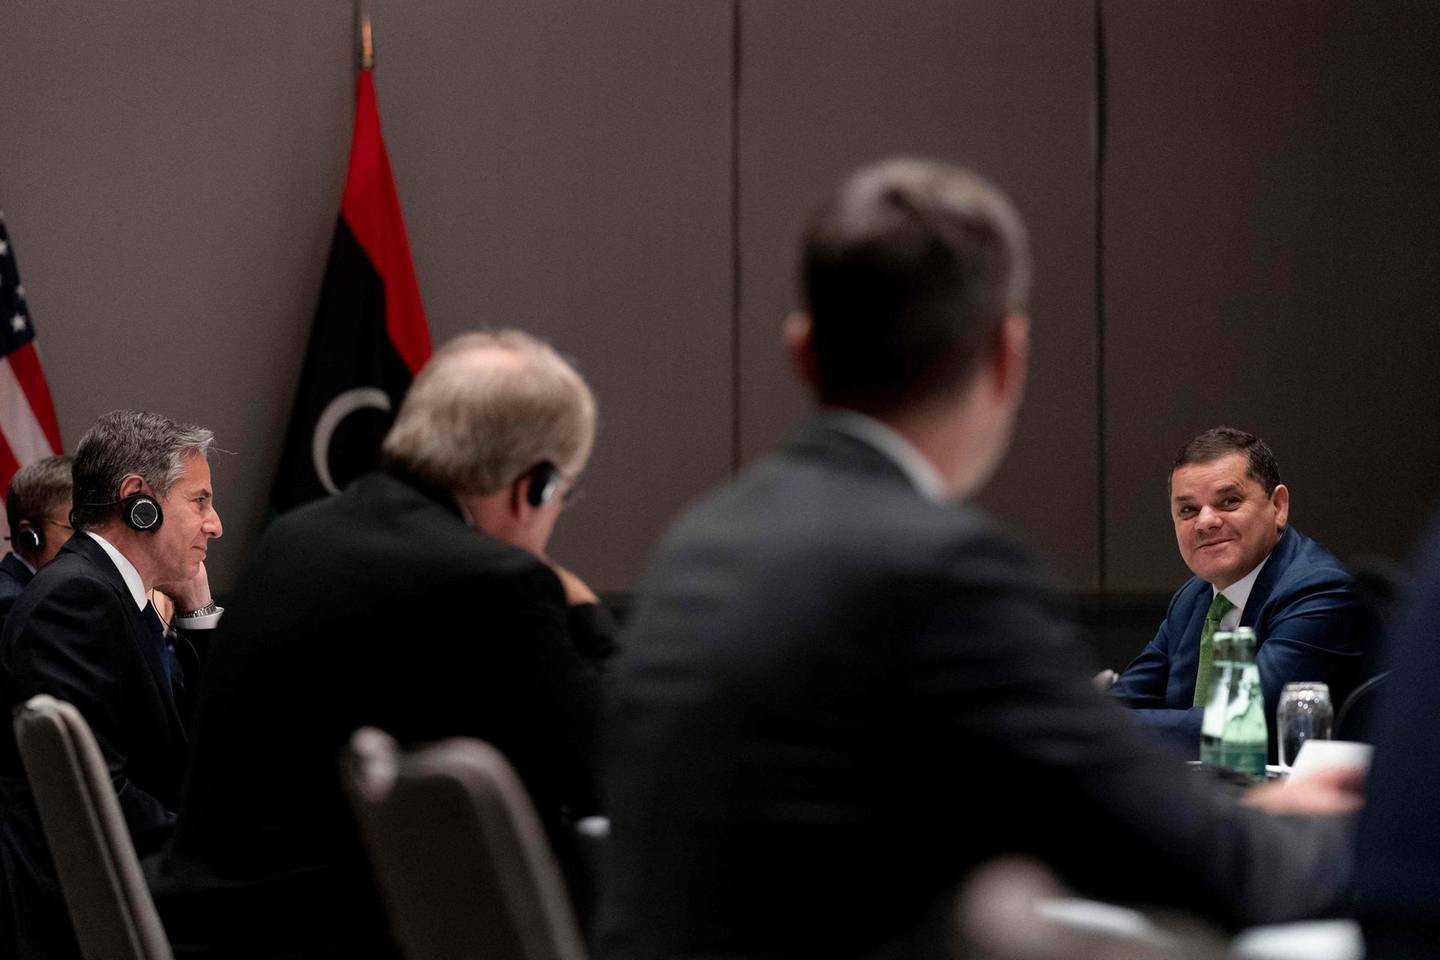 US Secretary of State Antony Blinken (L) attends a meeting with Libyan Prime Minister Abdul Hamid Dbeibeh (R) at the Marriott Hotel in Berlin, Germany, on June 24, 2021.   Hopes grew on June 23 for Libya's stability following a decade of bloodshed as Russia and Turkey reached a tentative plan in talks in Berlin to start withdrawing foreign mercenaries, officials said. A UN-sponsored conference -- the second held in the German capital -- renewed commitments to holding elections on December 24, a watershed for the North African nation where foreign powers have violently jostled for influence. / AFP / POOL / Andrew Harnik